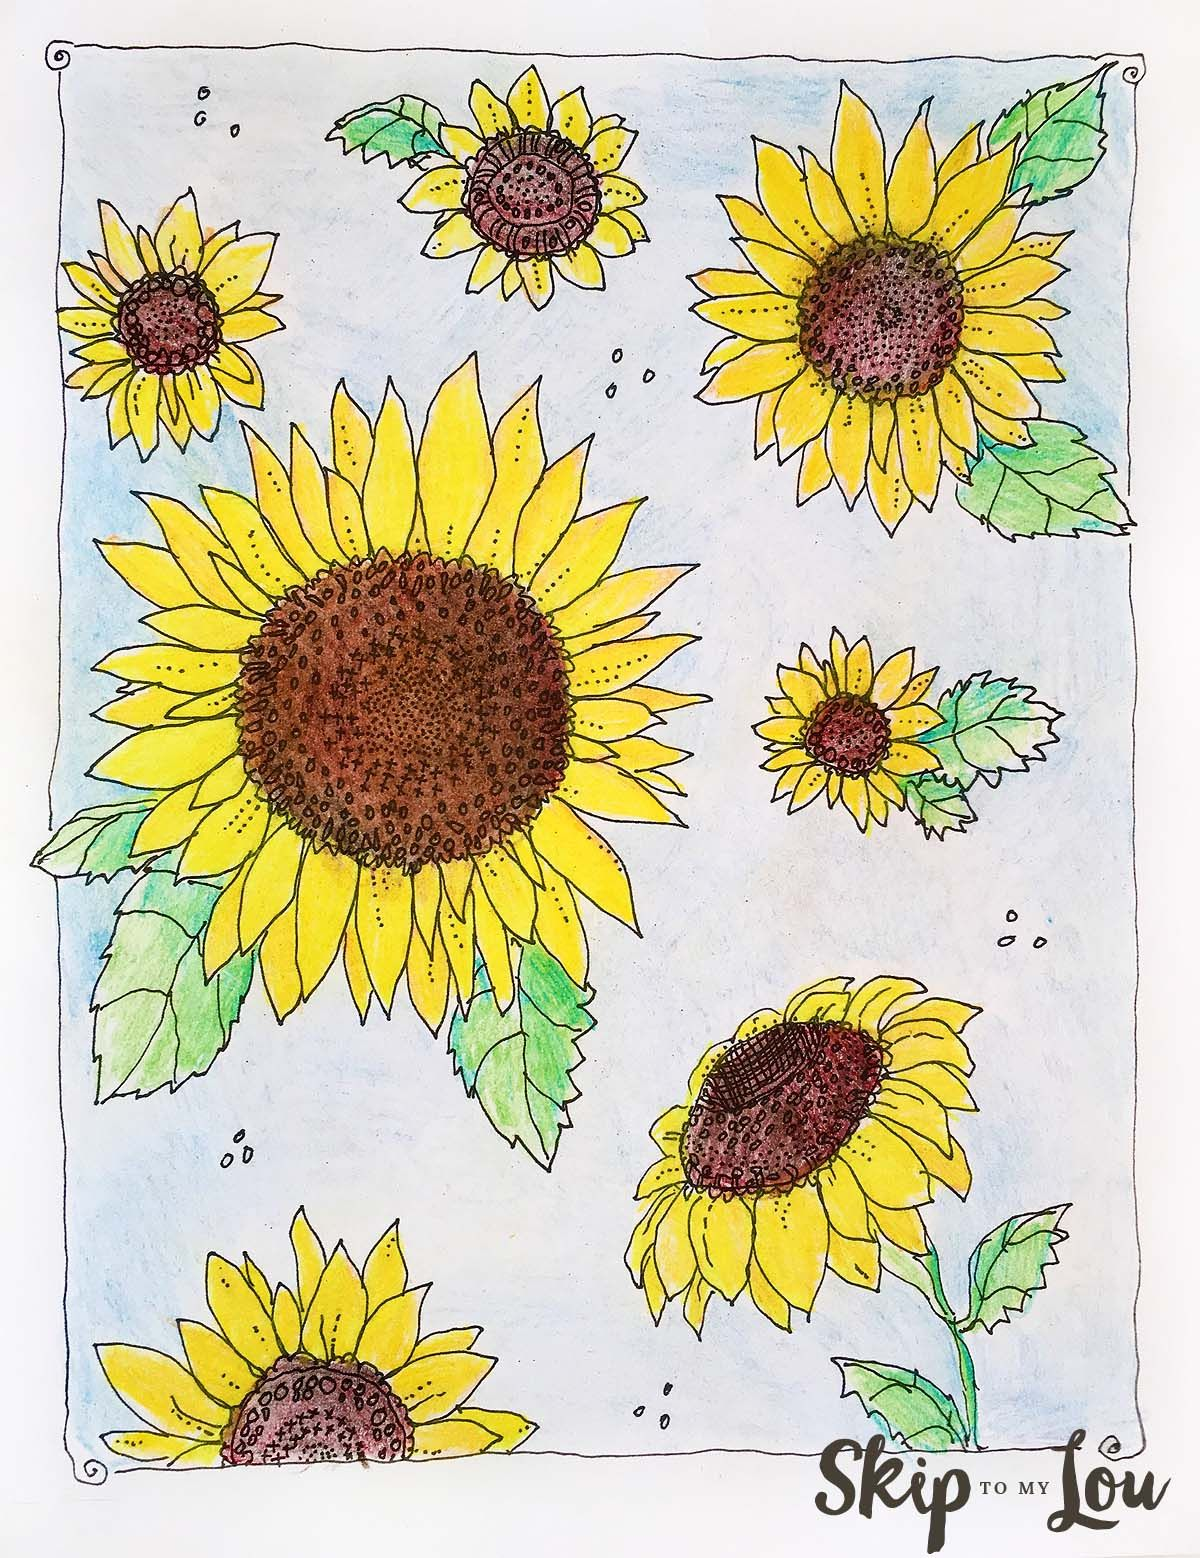 Sunflower coloring page! We're celebrating Kansas day at